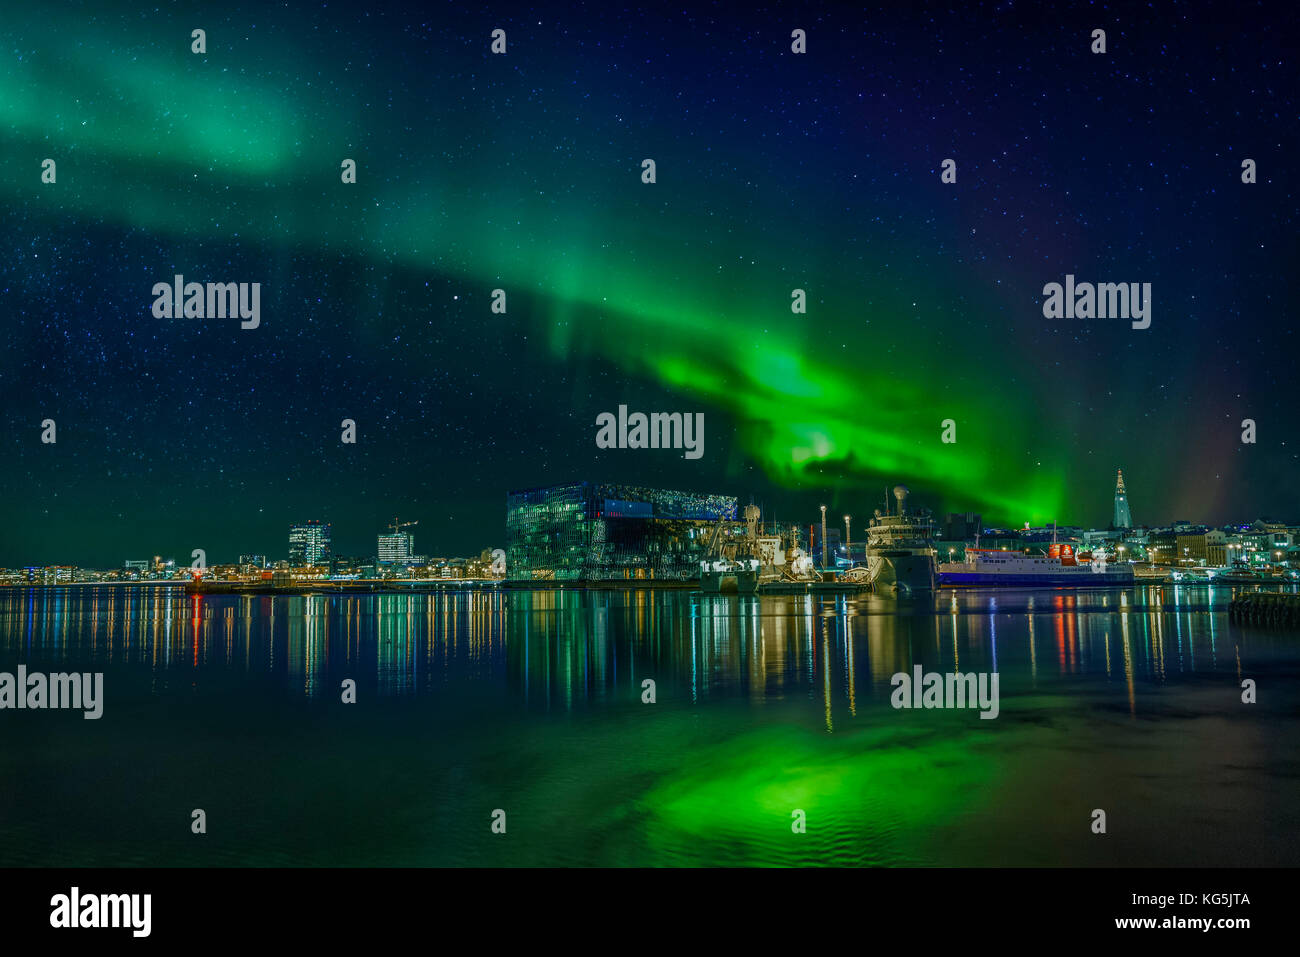 Northern lights shinning bright over Reykajvik, Iceland - Stock Image